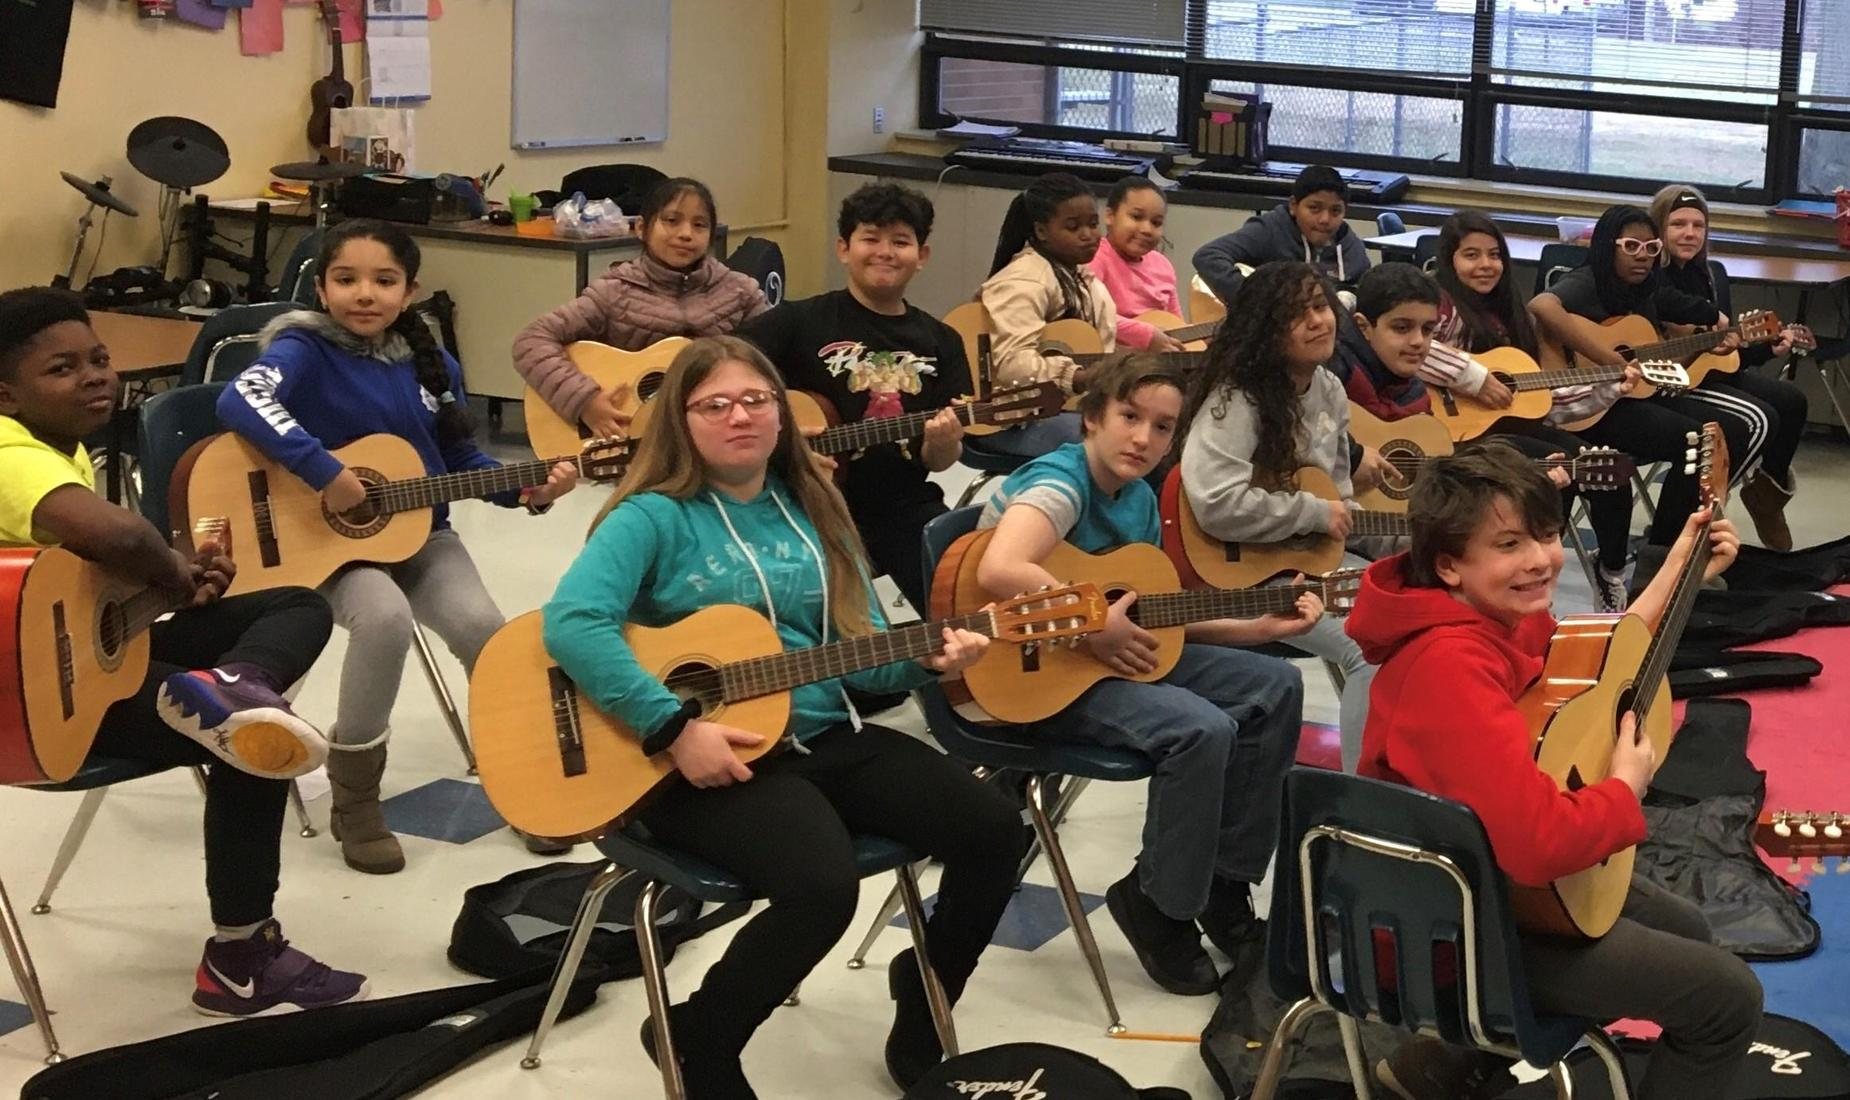 15 elementary school students in music classroom, each holding a guitar, smiling!